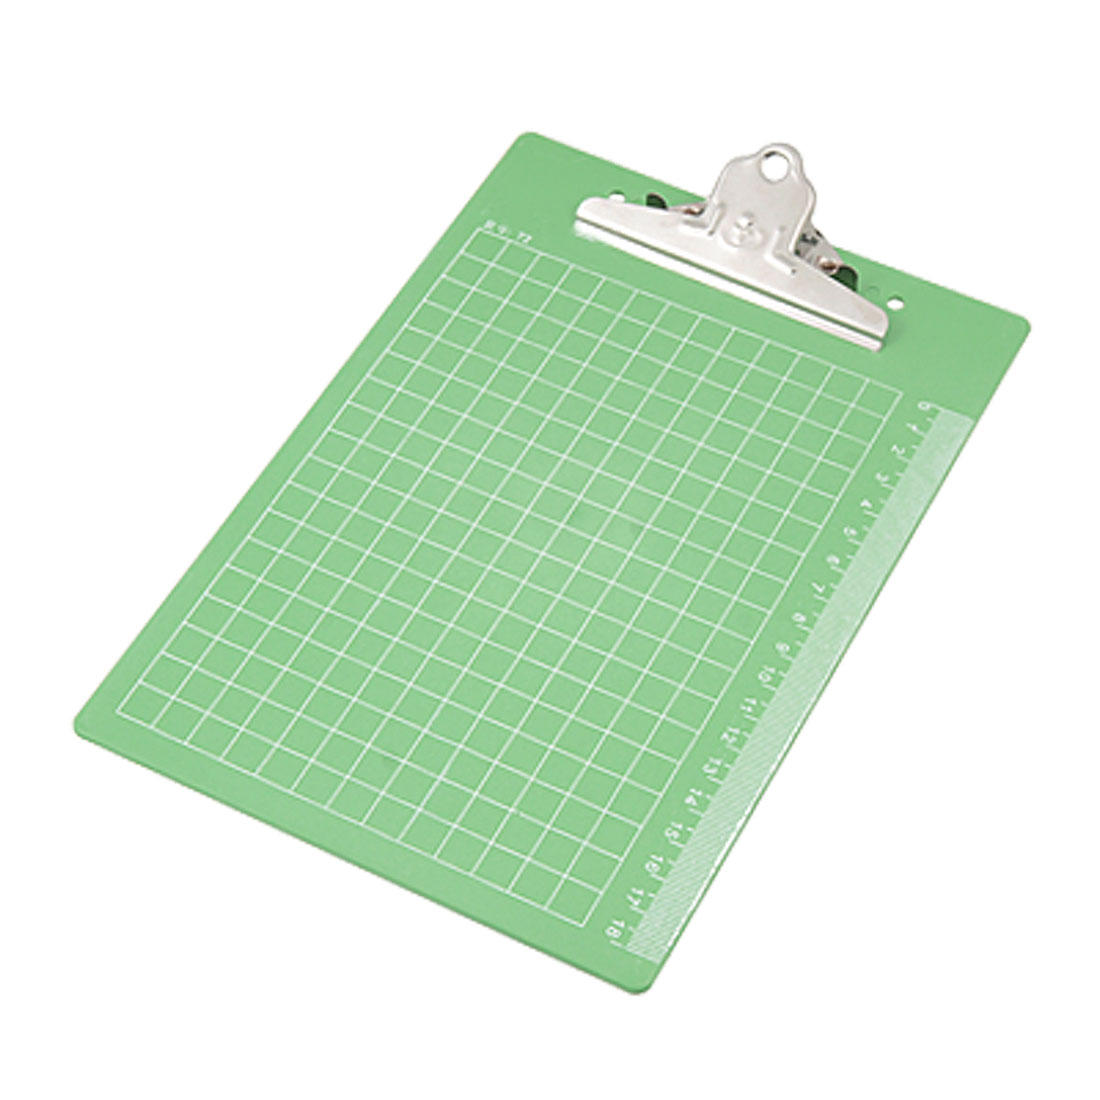 Green Plastic Restaurant Memo Paper Holder Writing Clipboard